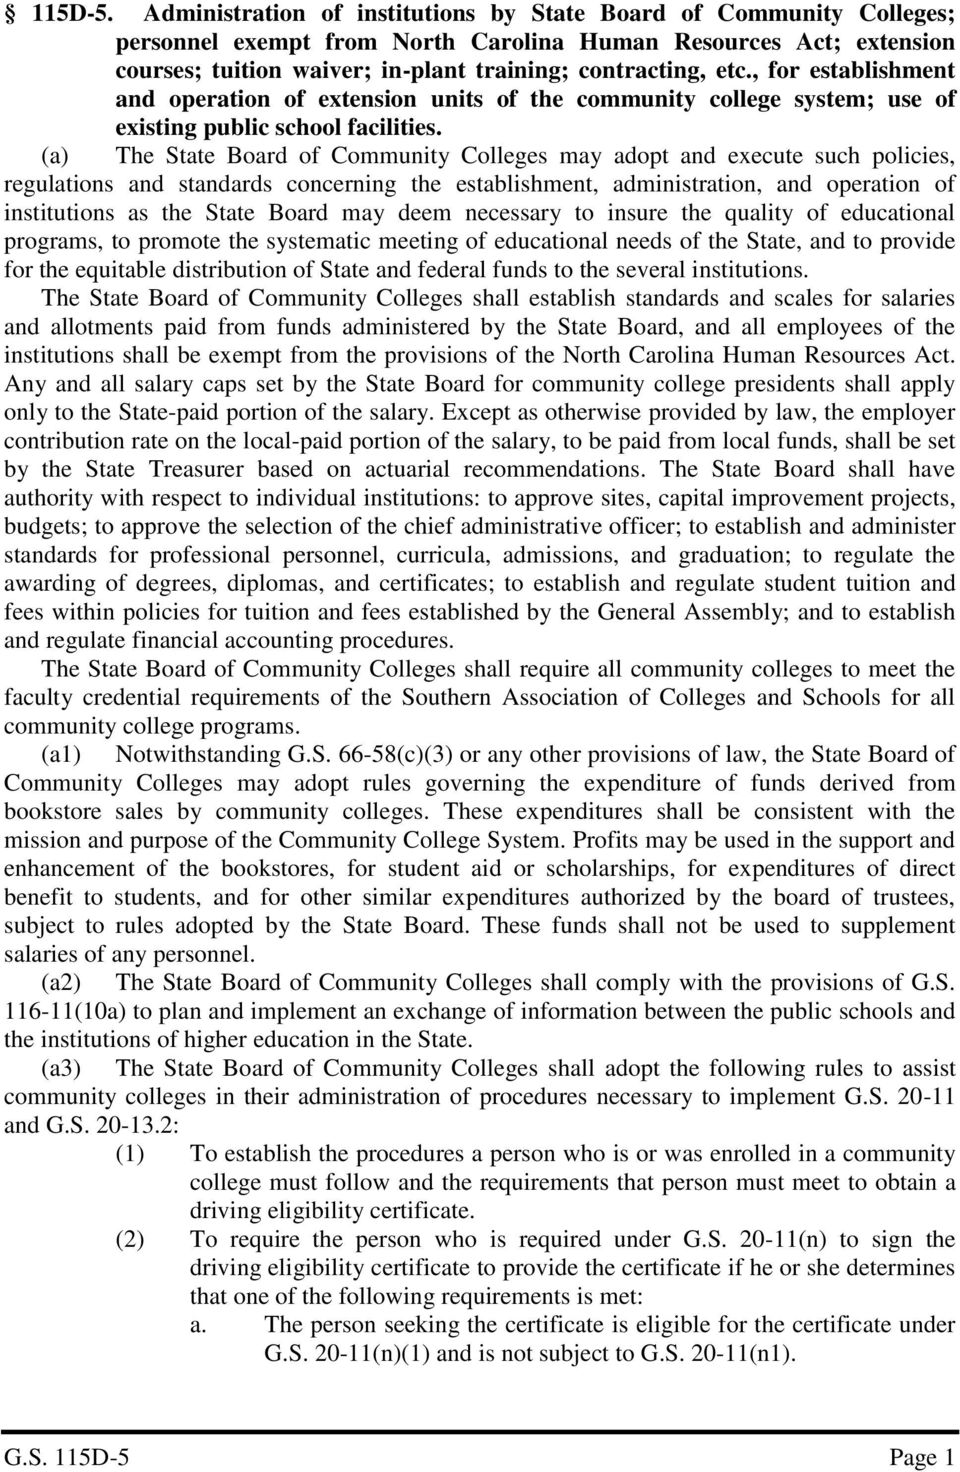 , for establishment and operation of extension units of the community college system; use of existing public school facilities.